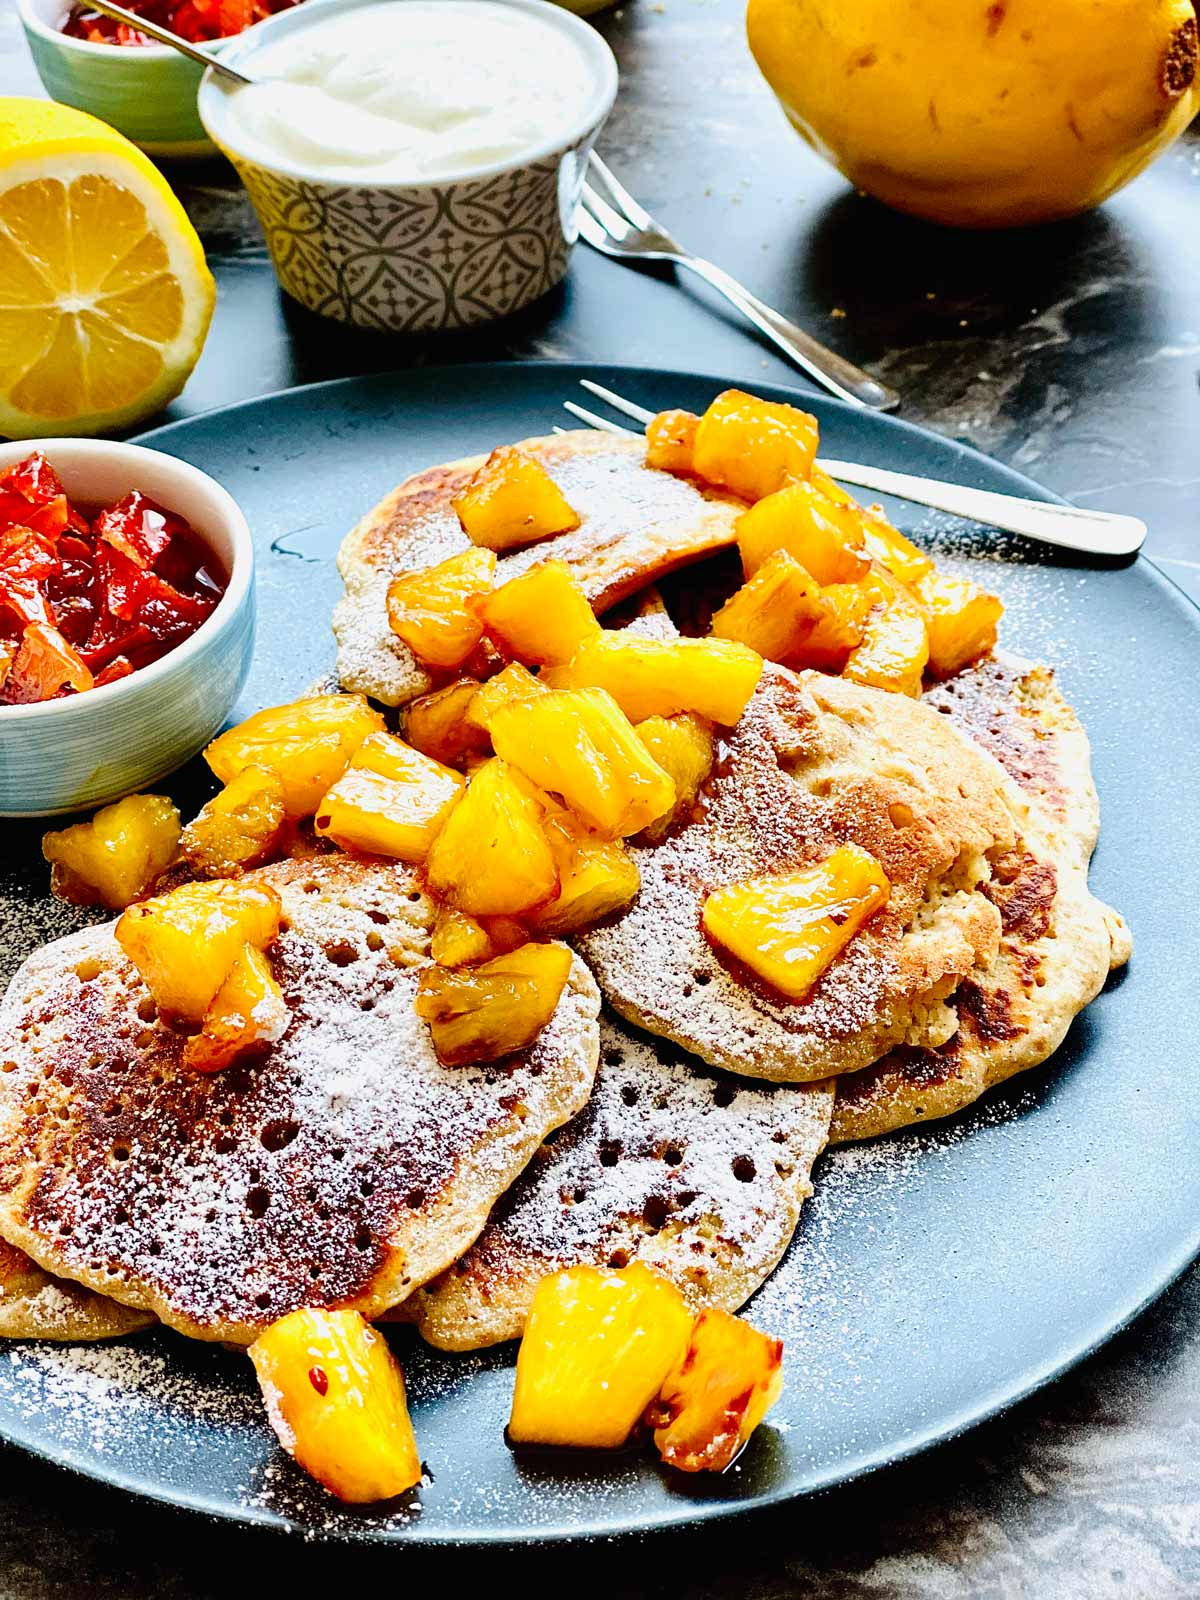 a few ricotta pancakes topped with pineapple chunks and a small dish on the left with a reddish chunky jam all on a black plate